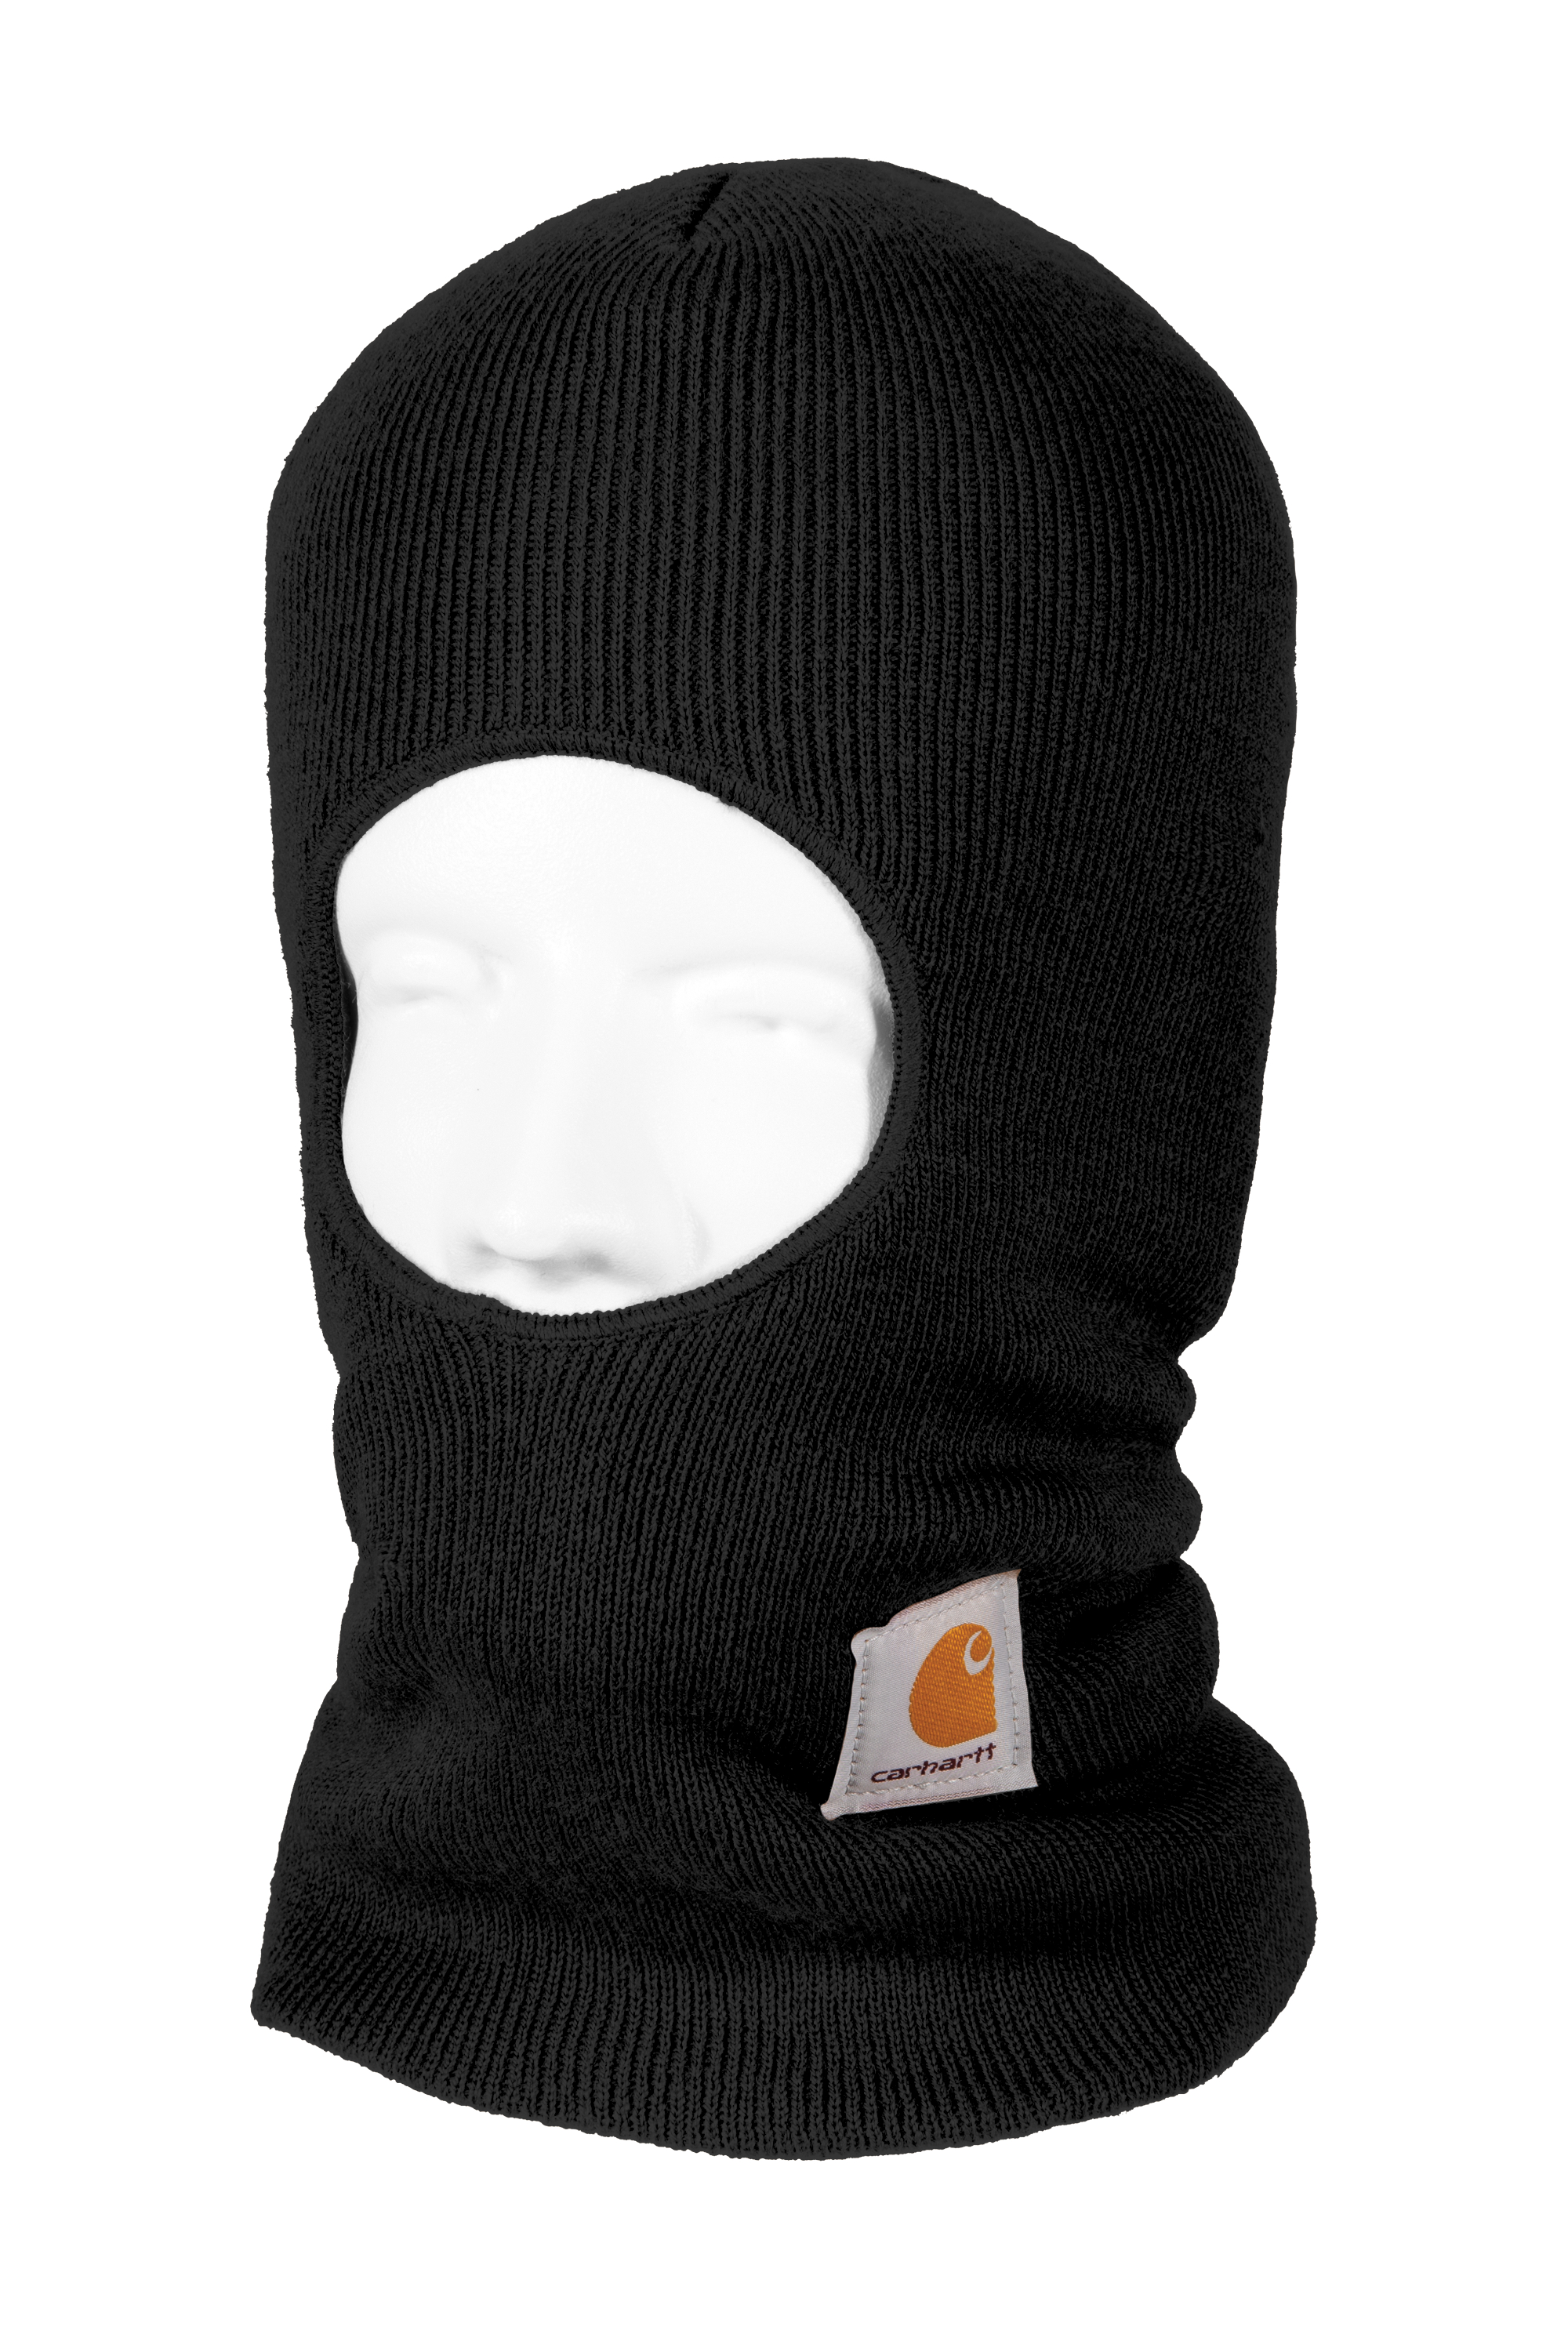 Home   Accessories   Hats   A161 Carhartt ® Face Mask ab327981e2f